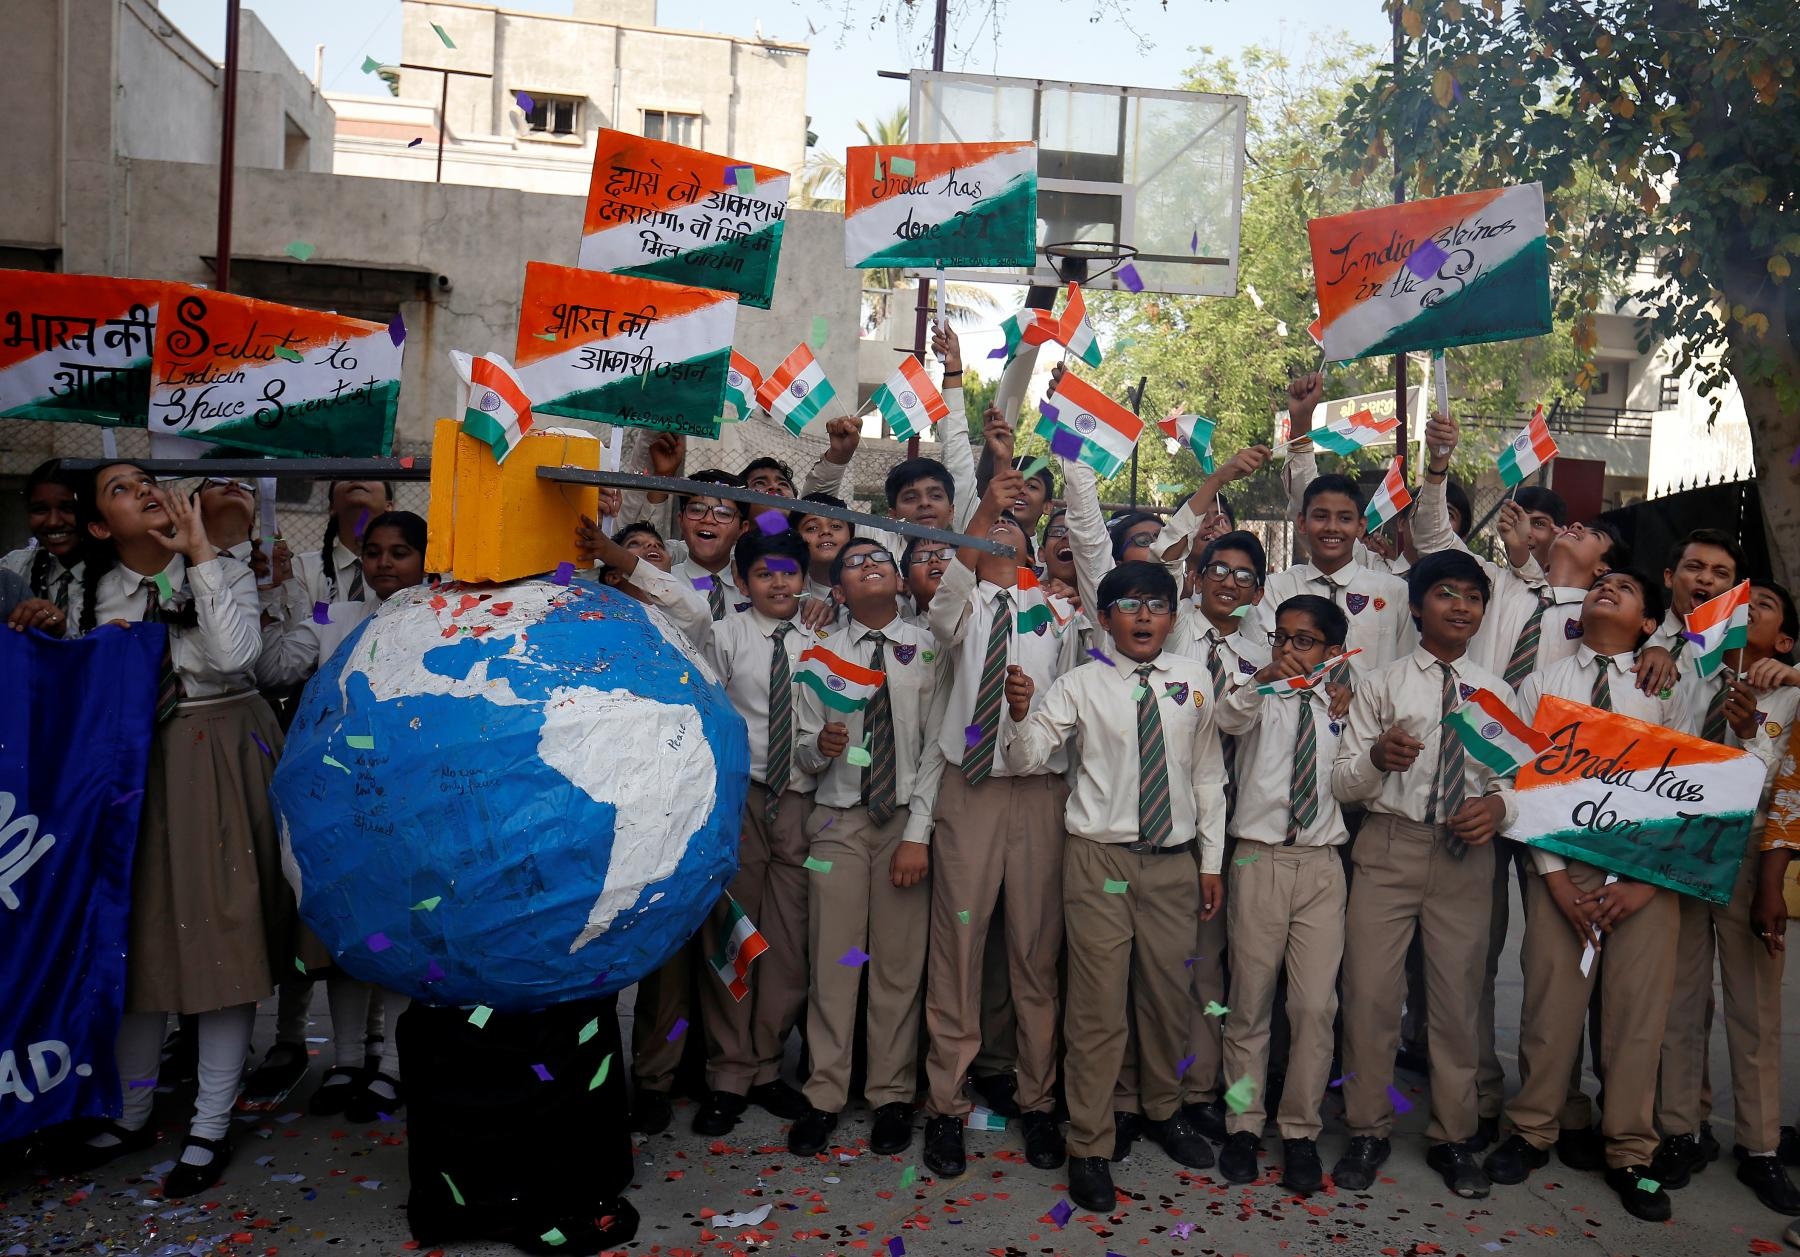 Students cheer and raise flags at a school in Ahmedabad after a successful anti-satellite missile test in India